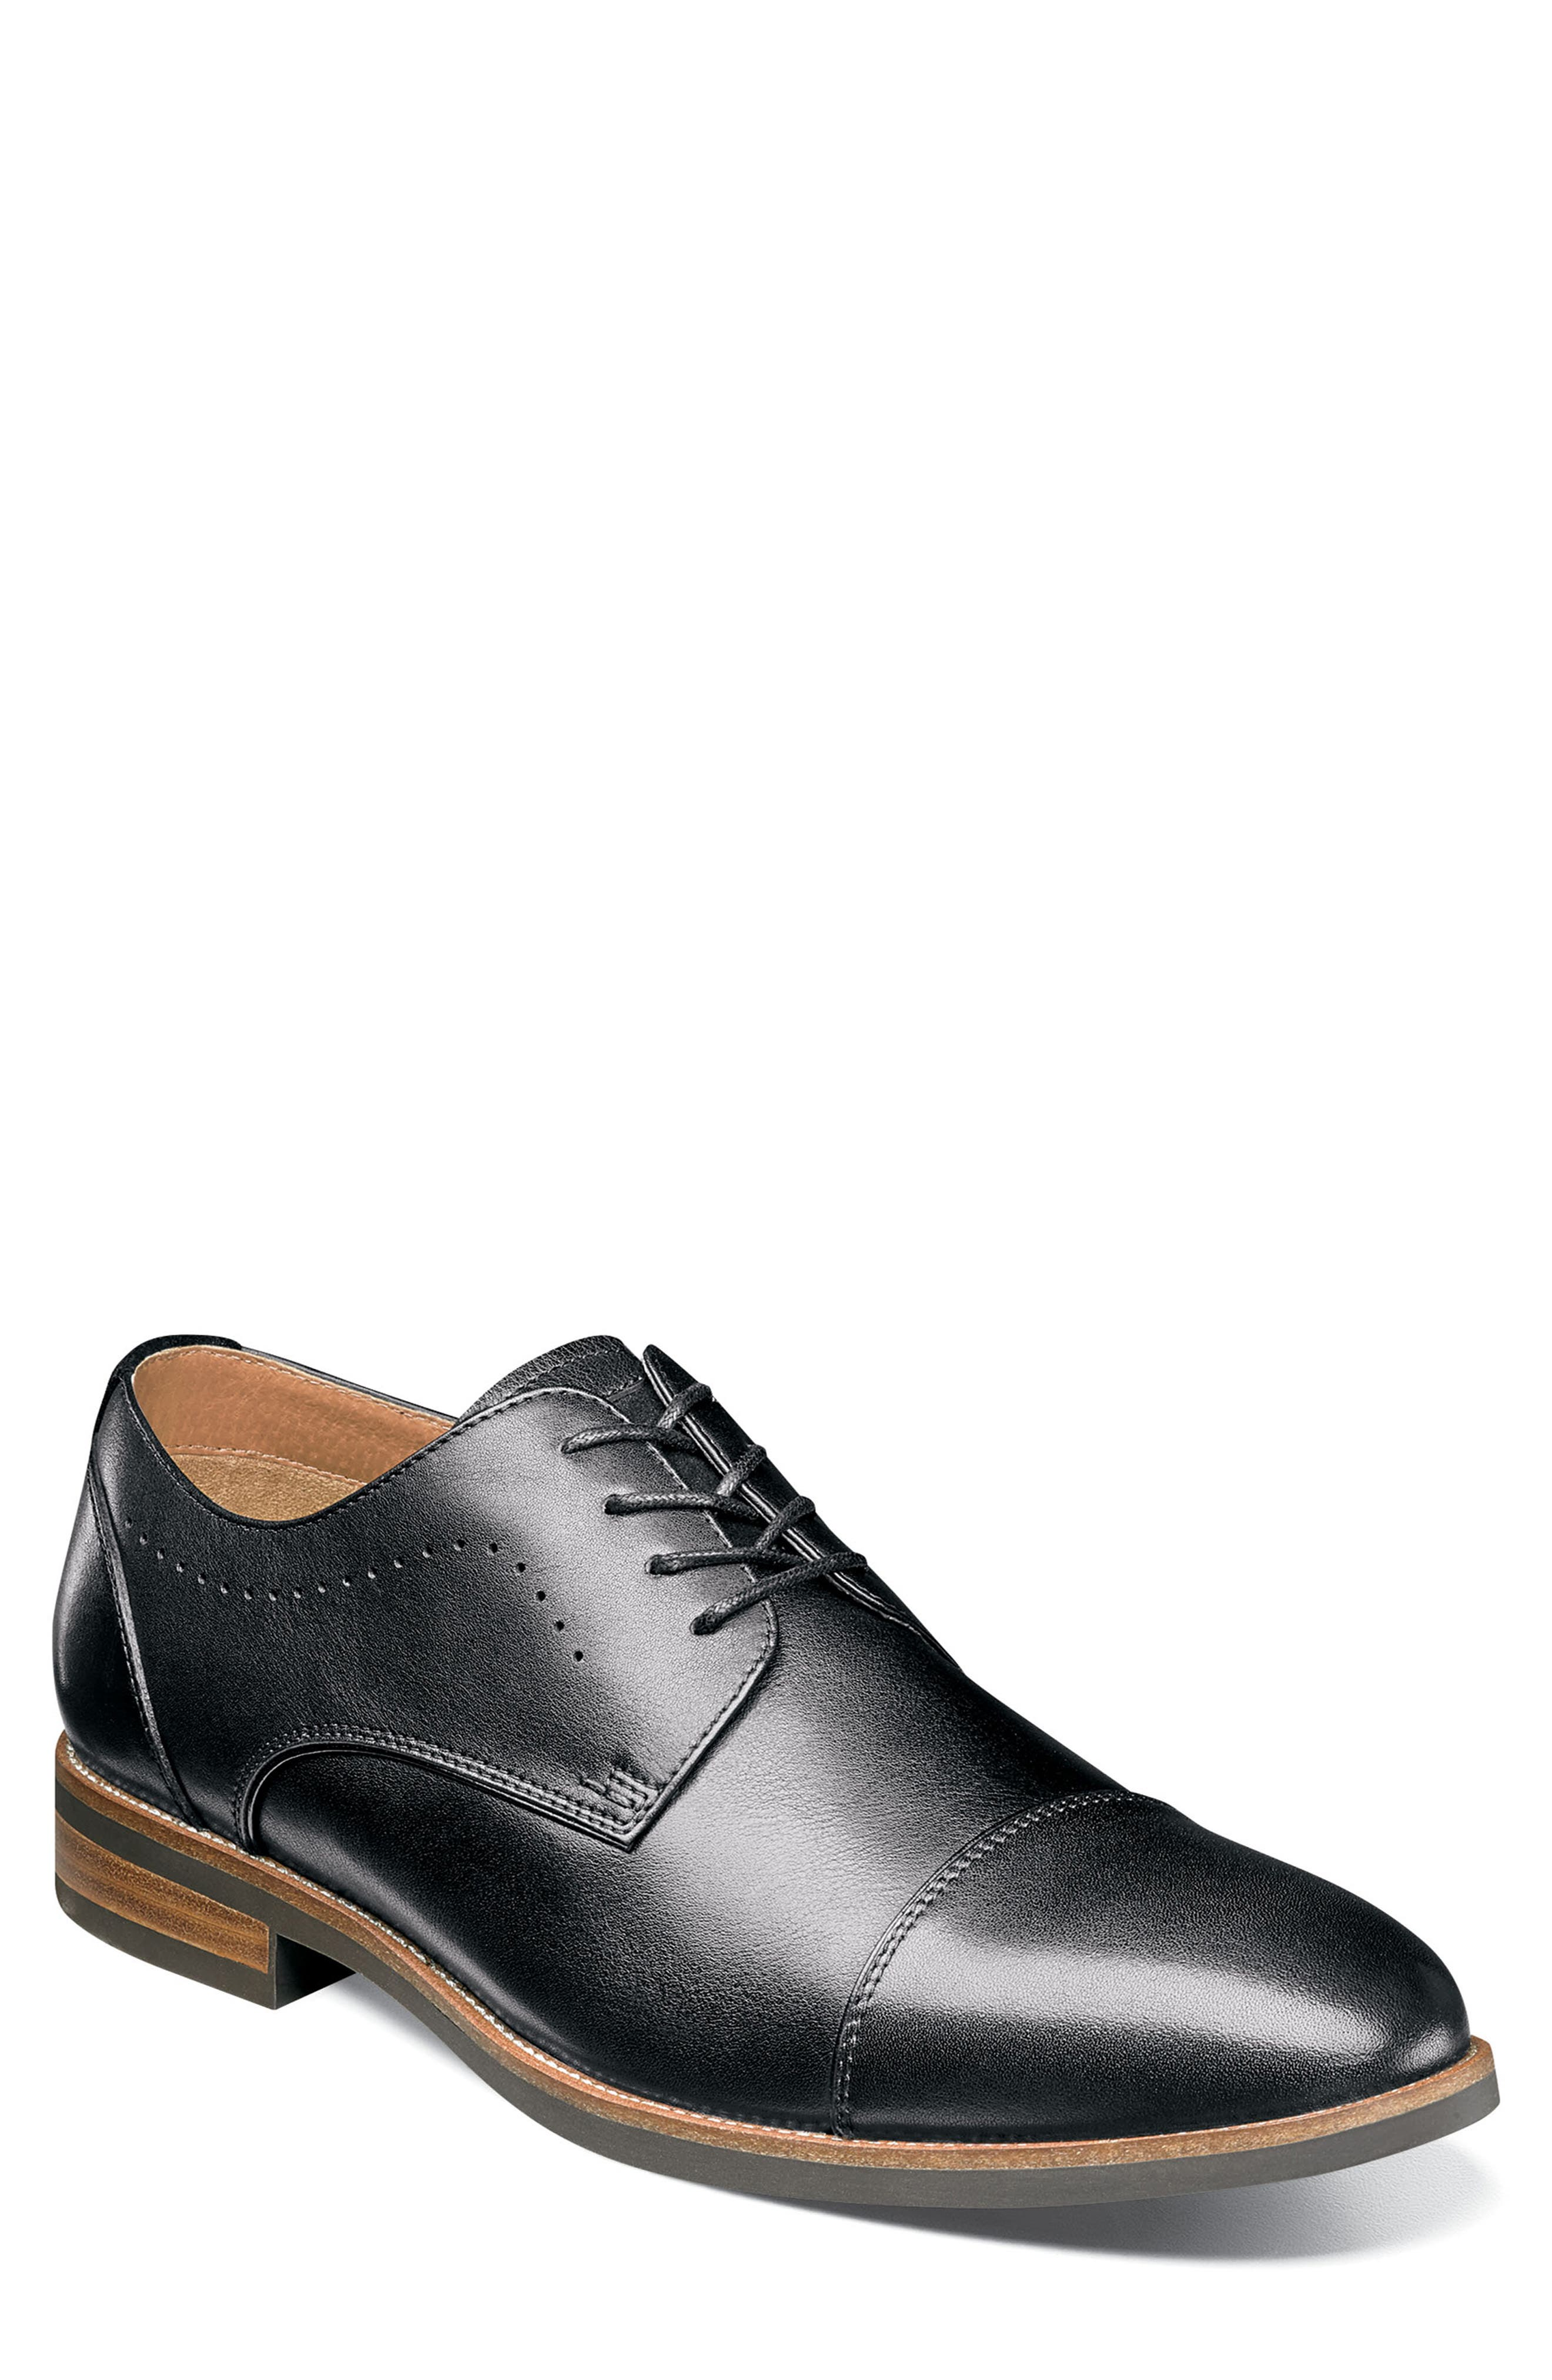 Uptown Cap Toe Derby,                         Main,                         color, BLACK LEATHER